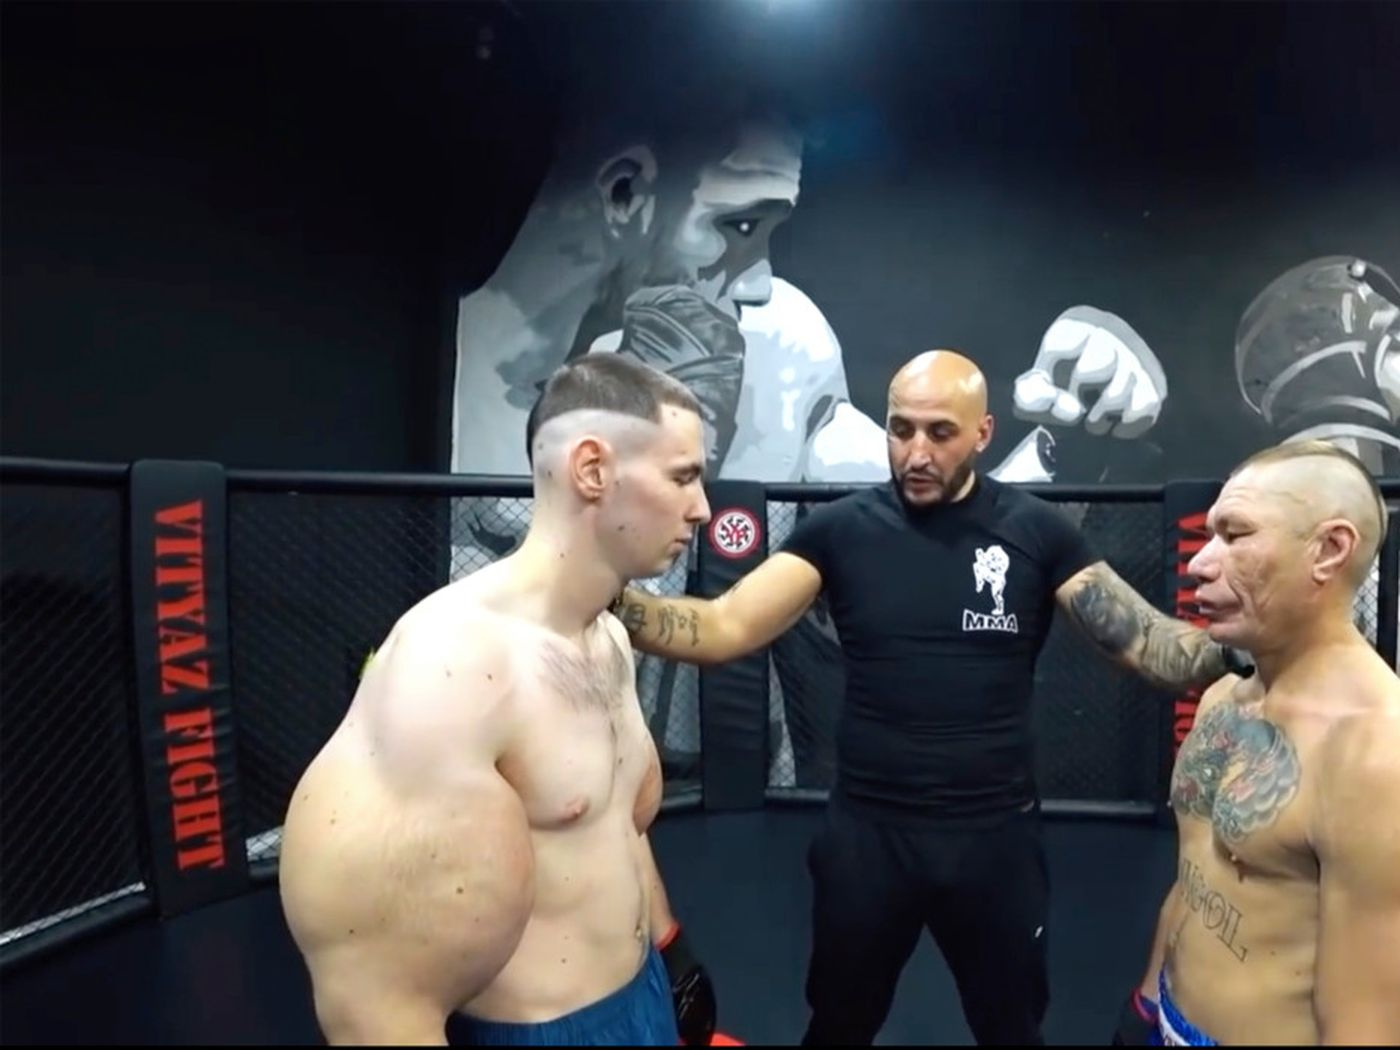 Video Russian Popeye Tries Mma Gets Destroyed By Random